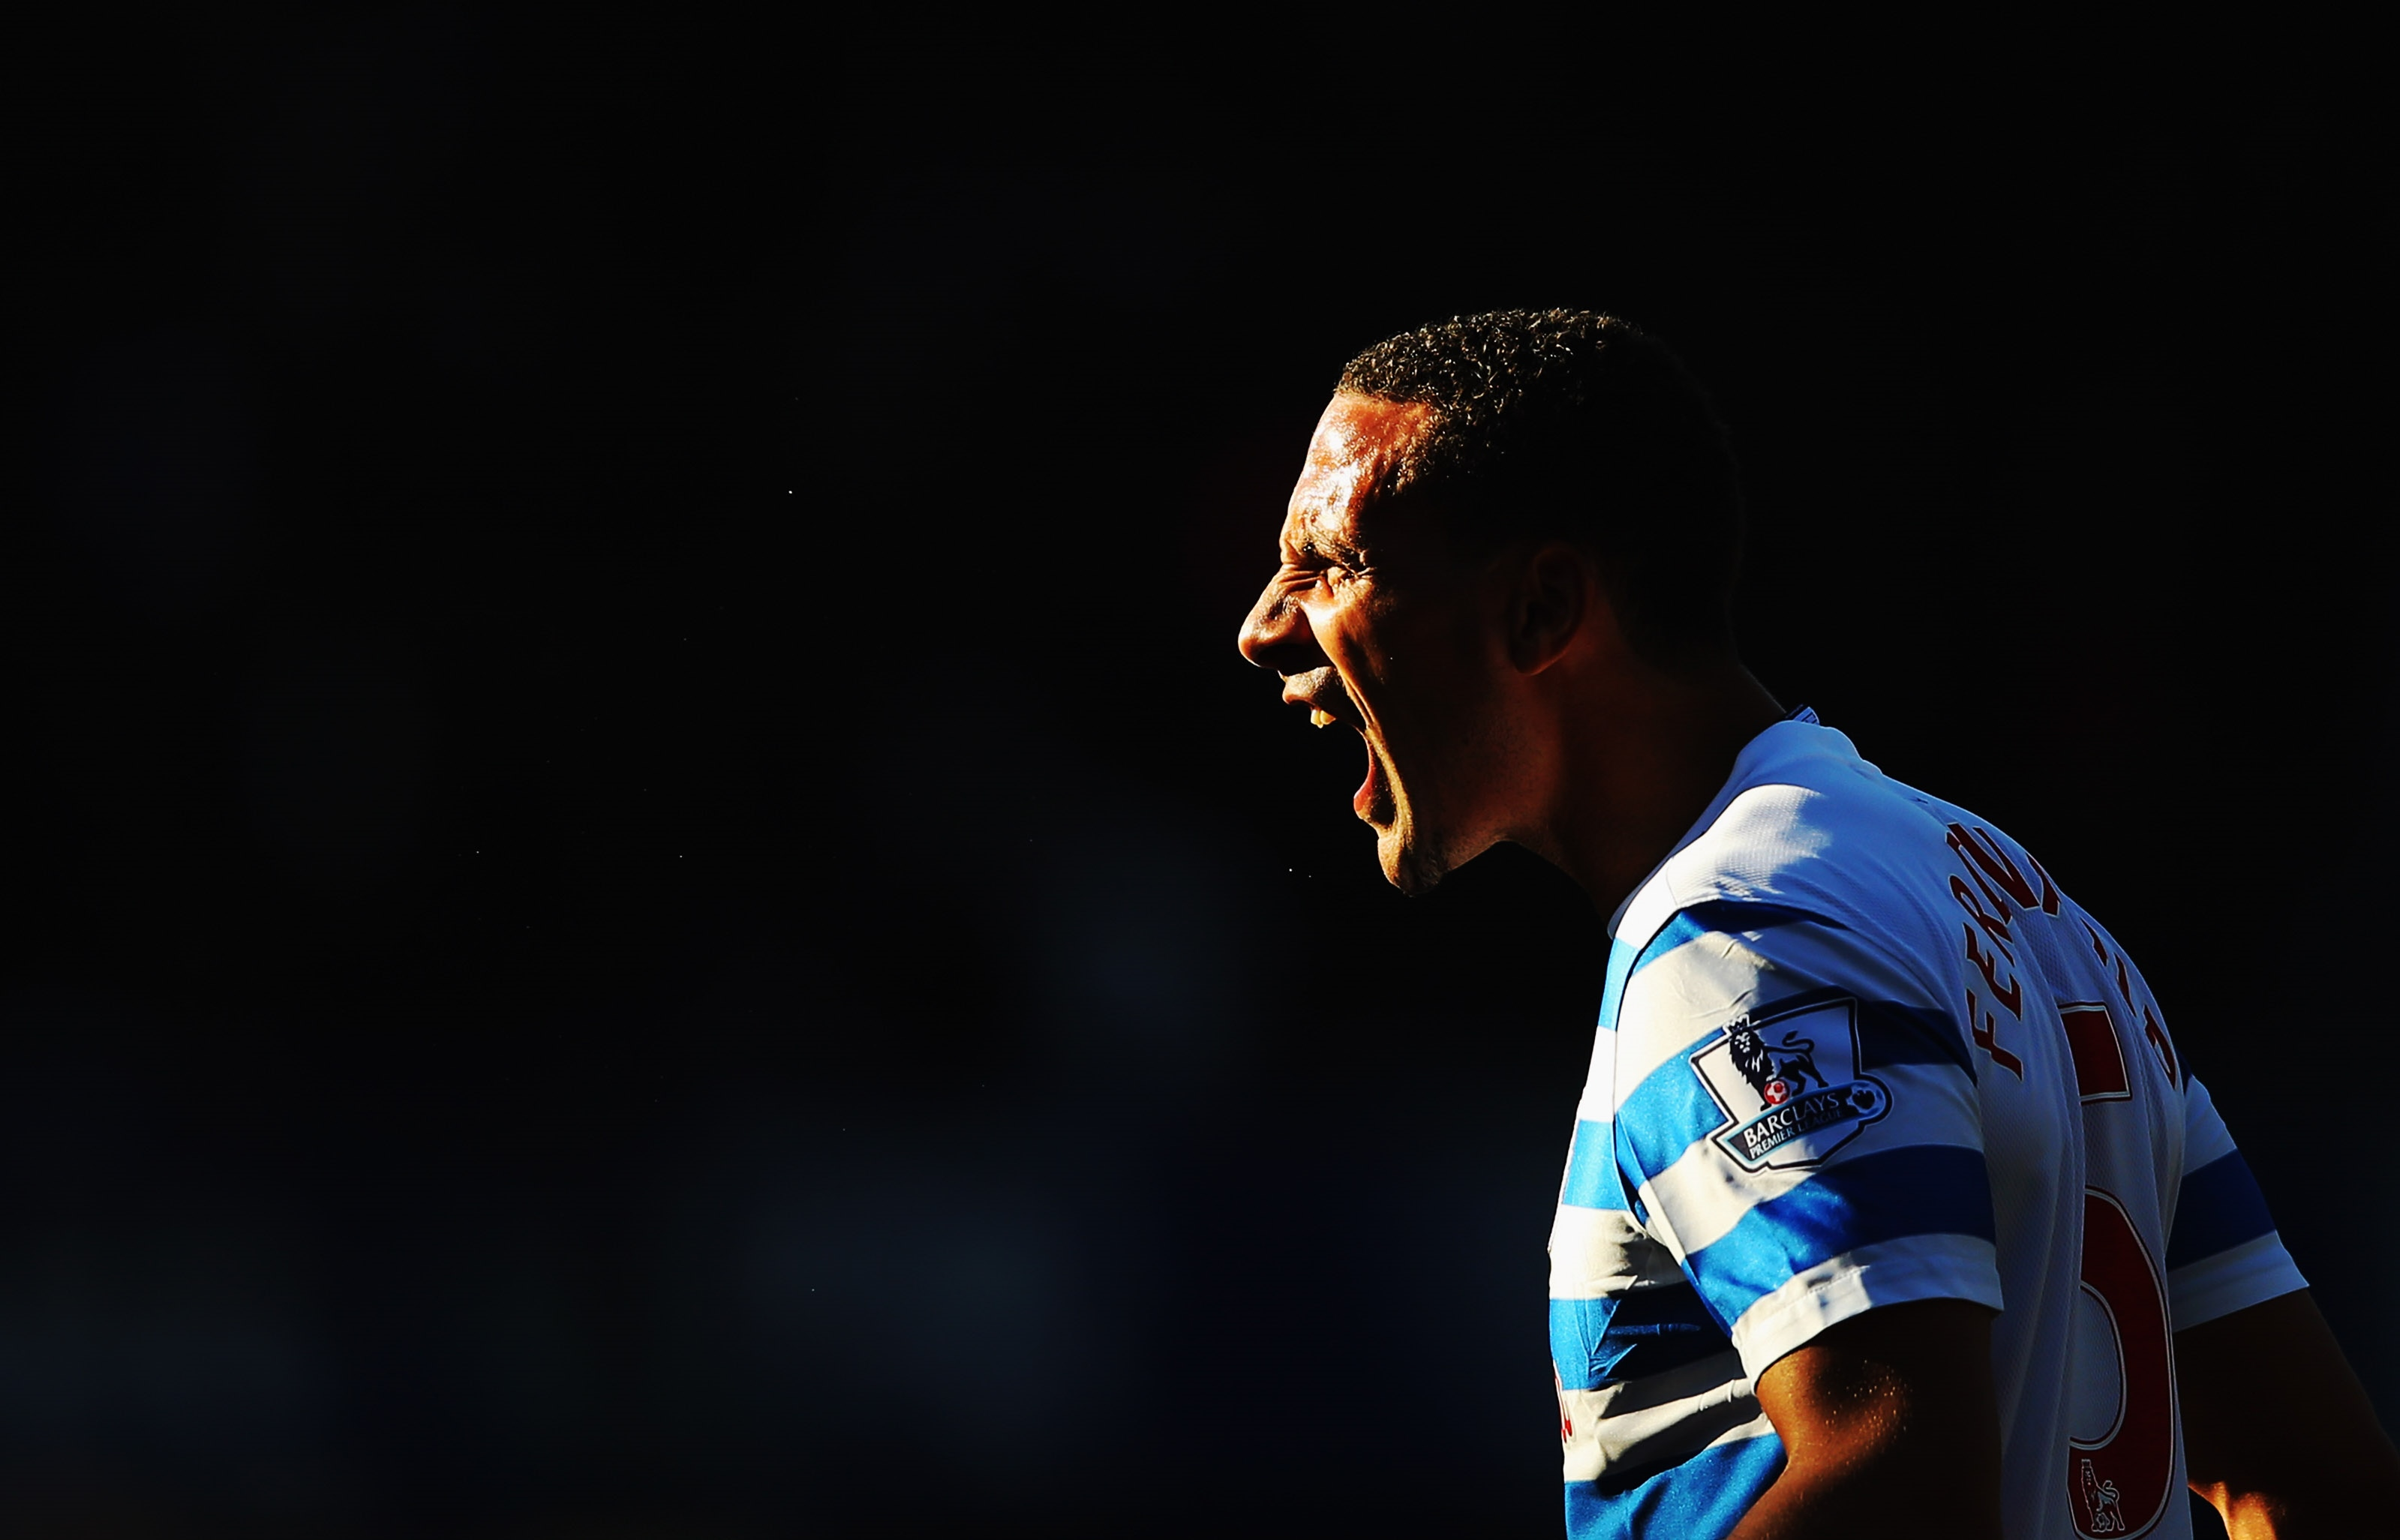 LONDON, ENGLAND - MARCH 07: Rio Ferdinand of QPR shouts during the Barclays Premier League match between Queens Park Rangers and Tottenham Hotspur at Loftus Road on March 7, 2015 in London, England. (Photo by Paul Gilham/Getty Images)